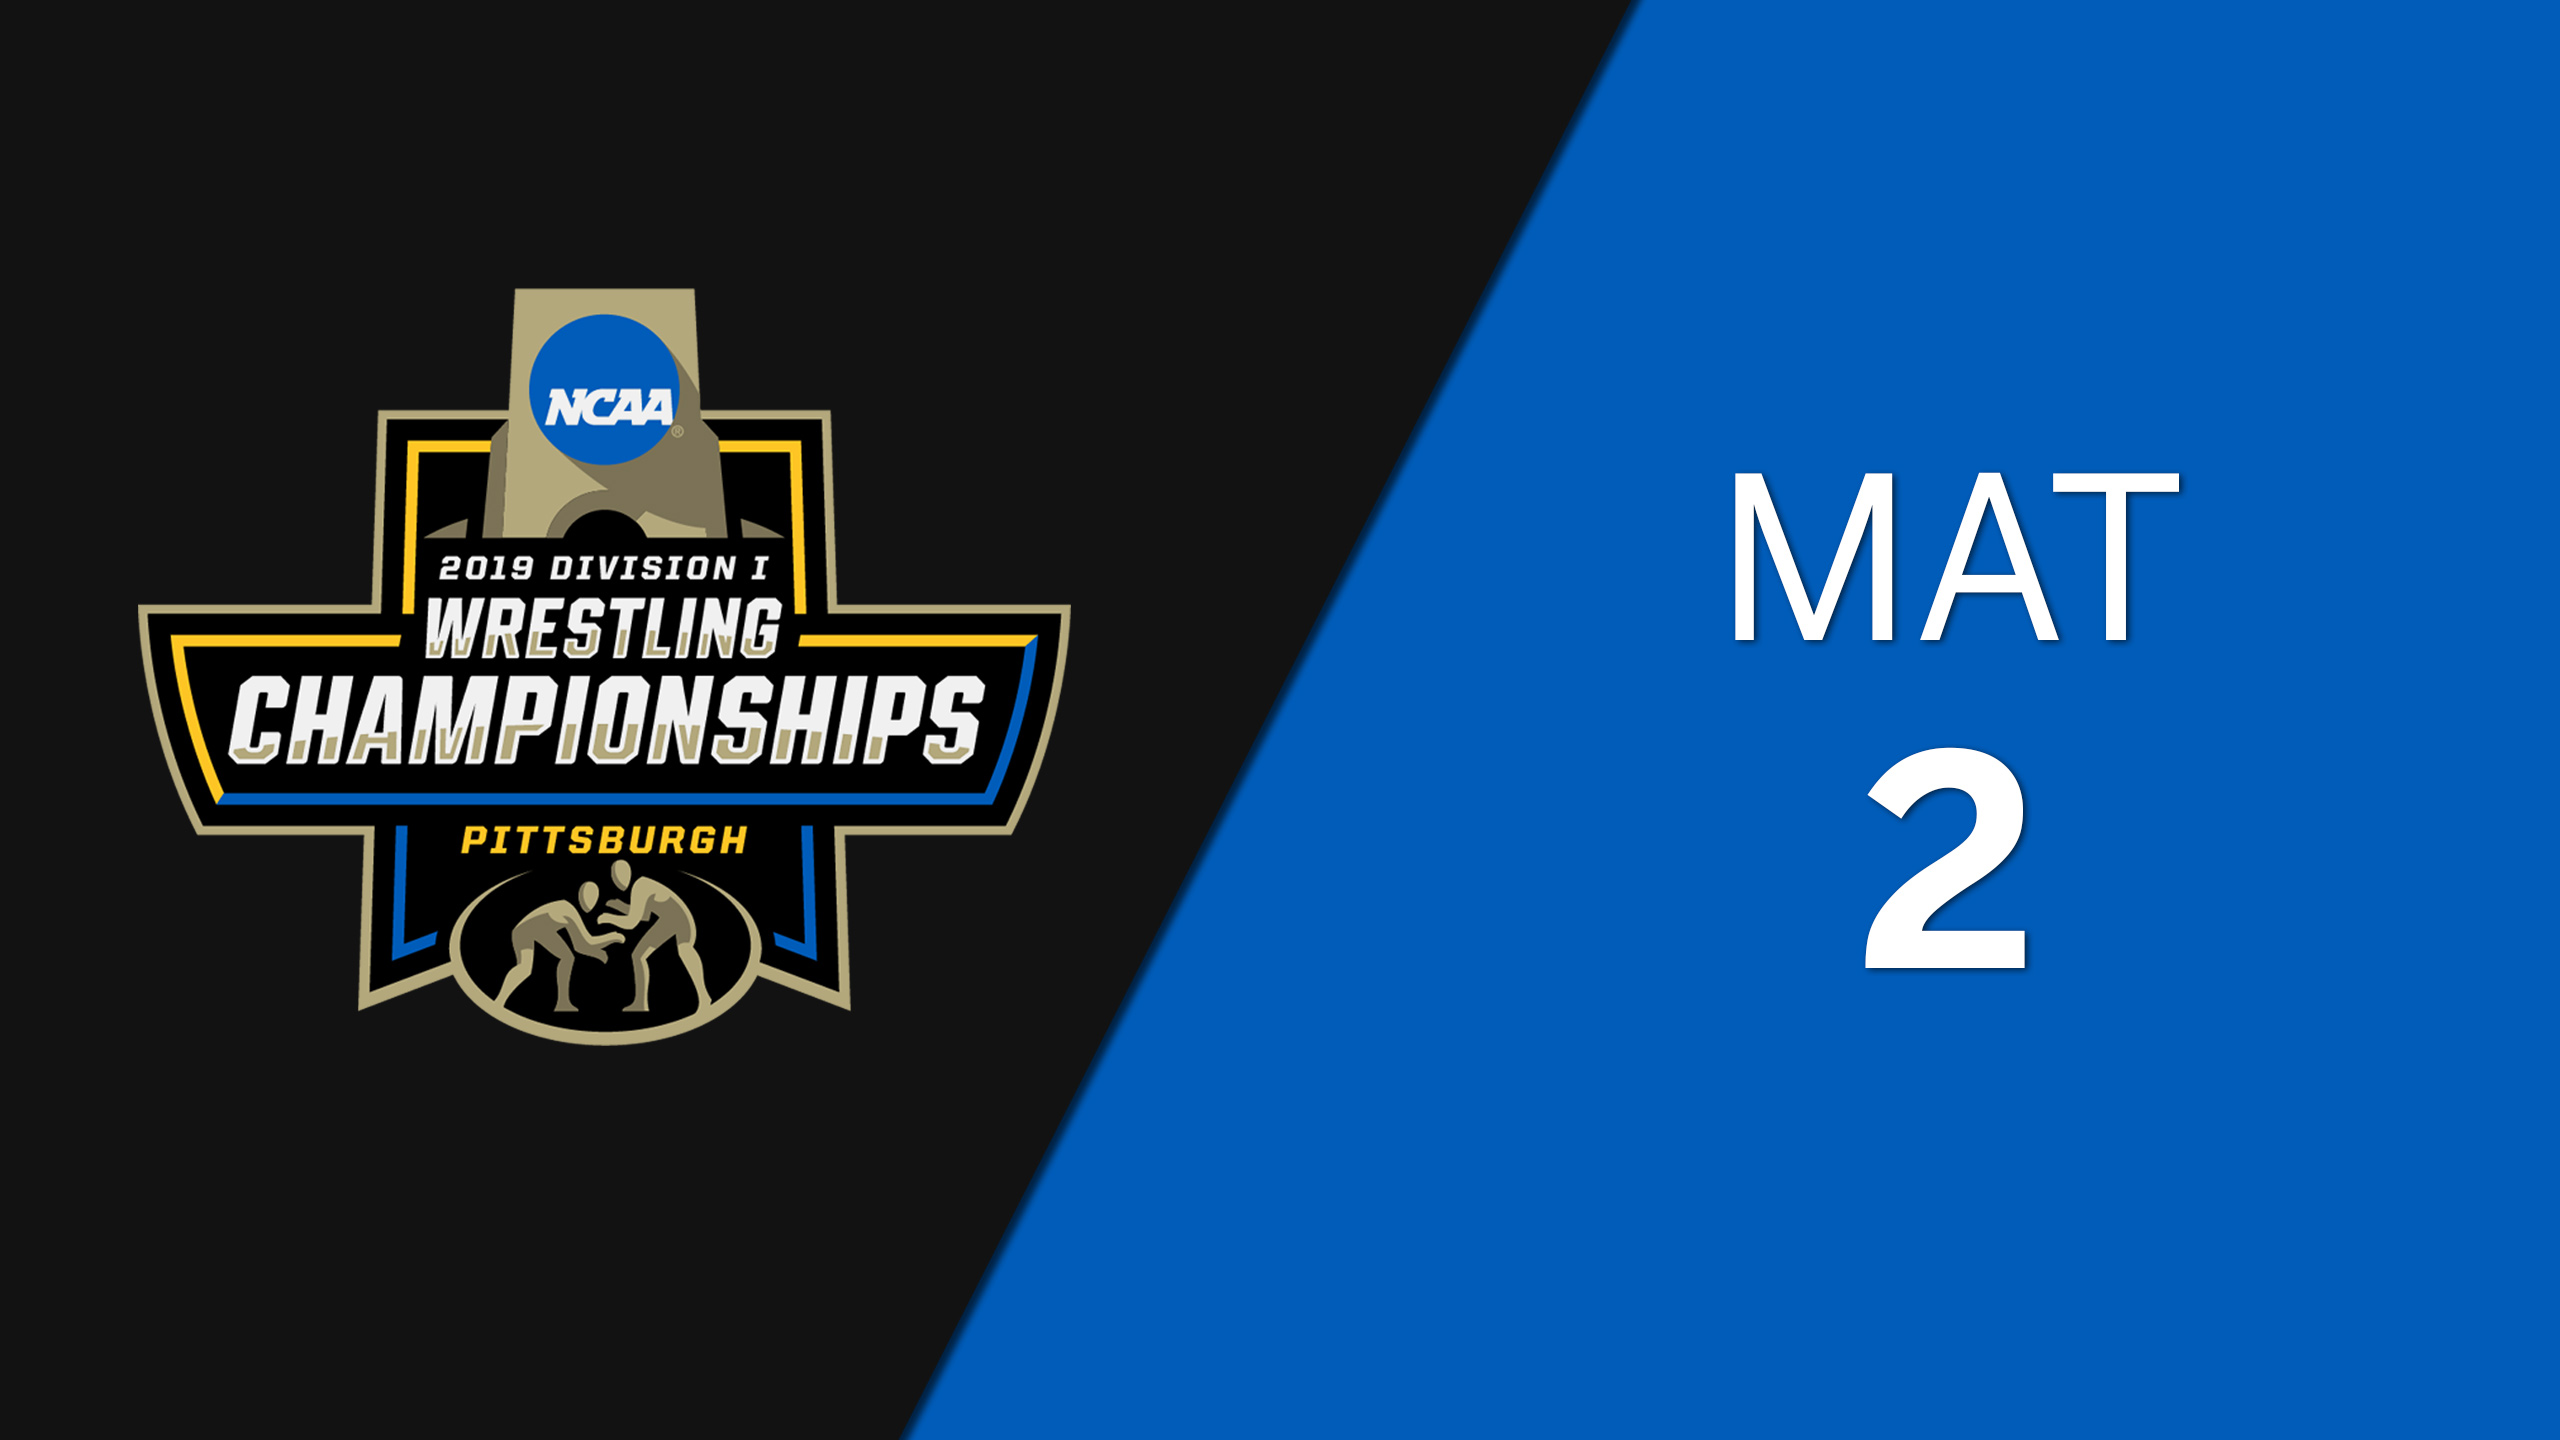 NCAA Wrestling Championship (Mat 2, First Round)